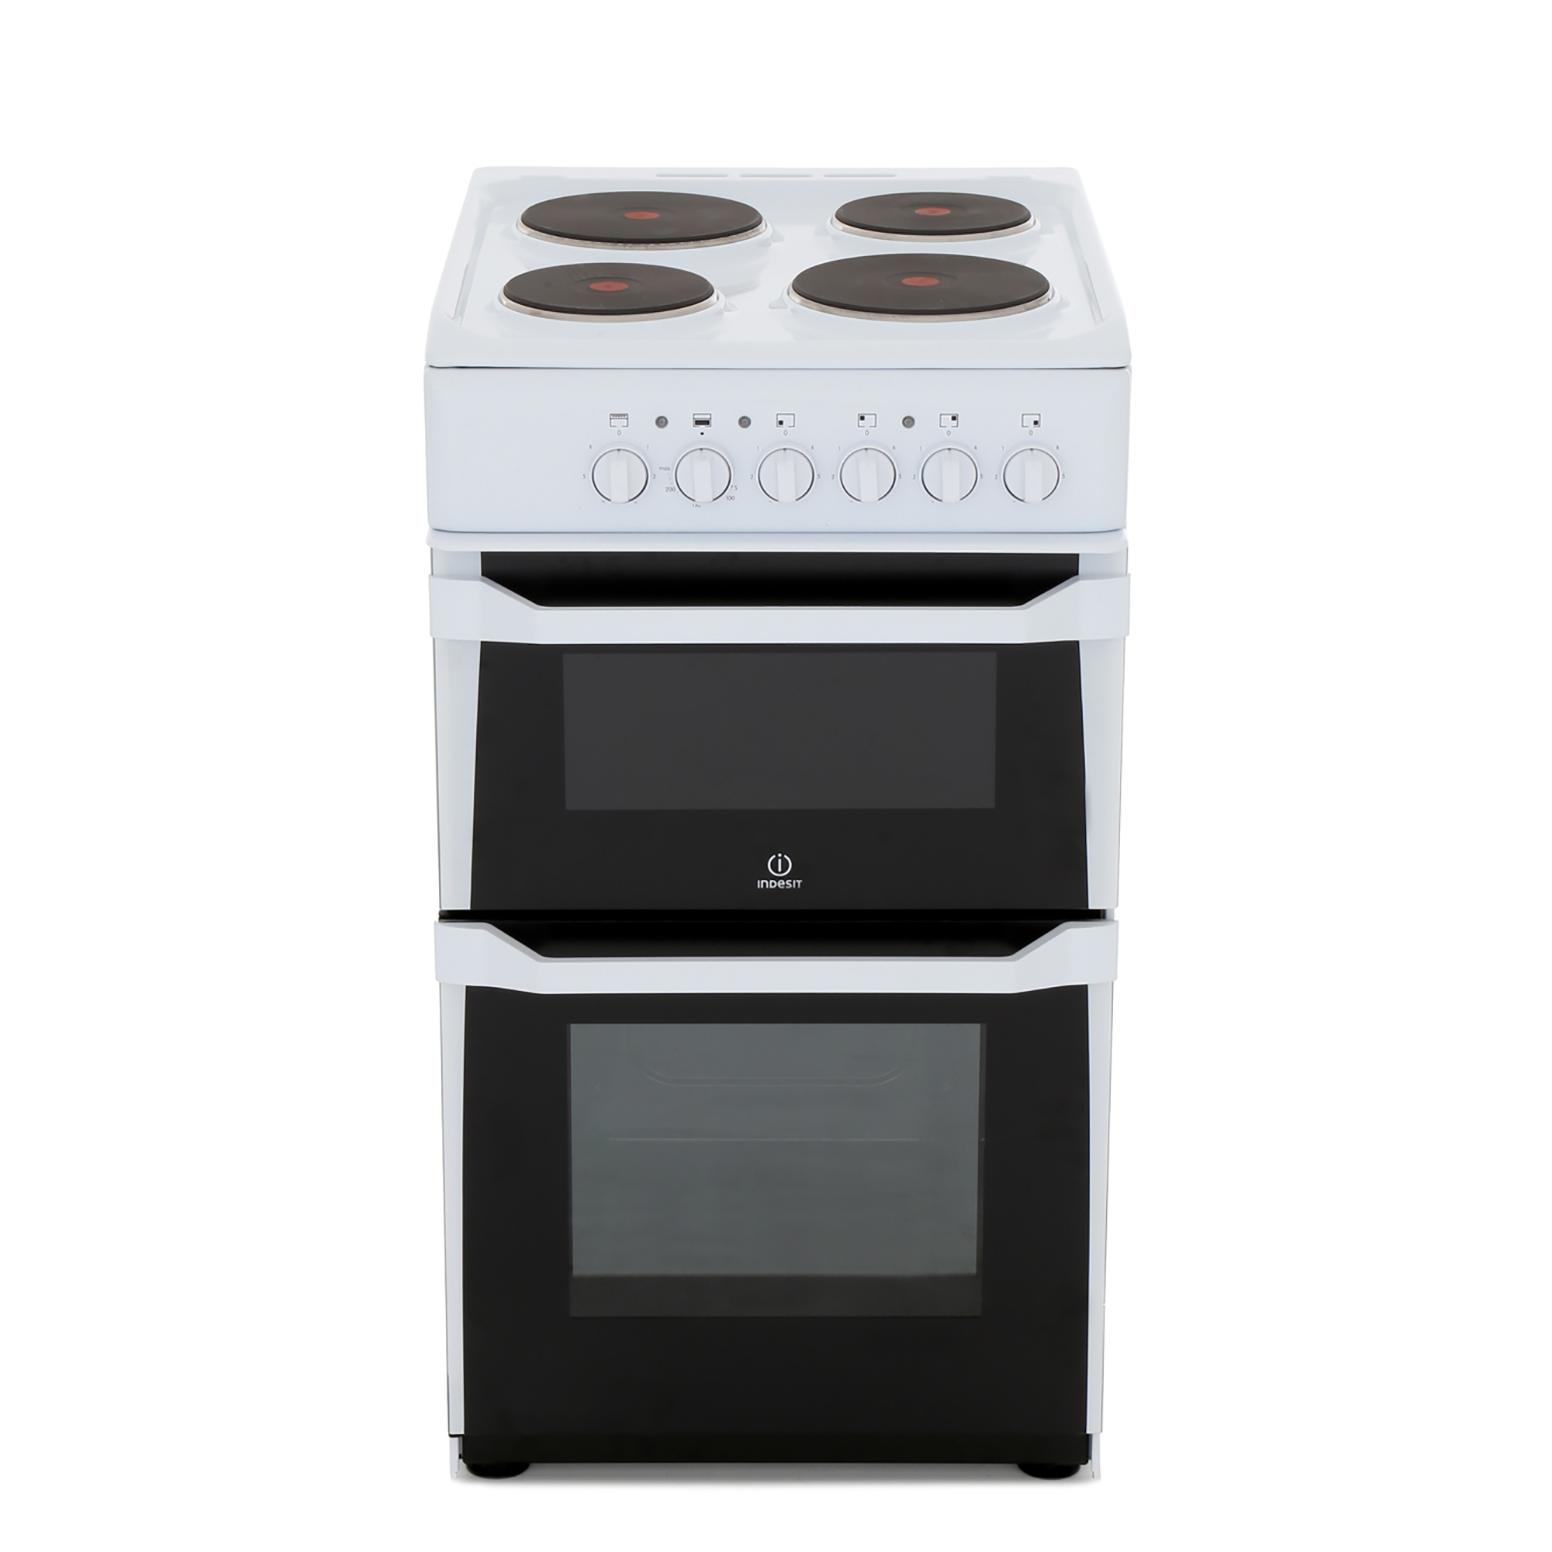 Indesit IT50EWS Solid Plate Electric Cooker Separate Grill